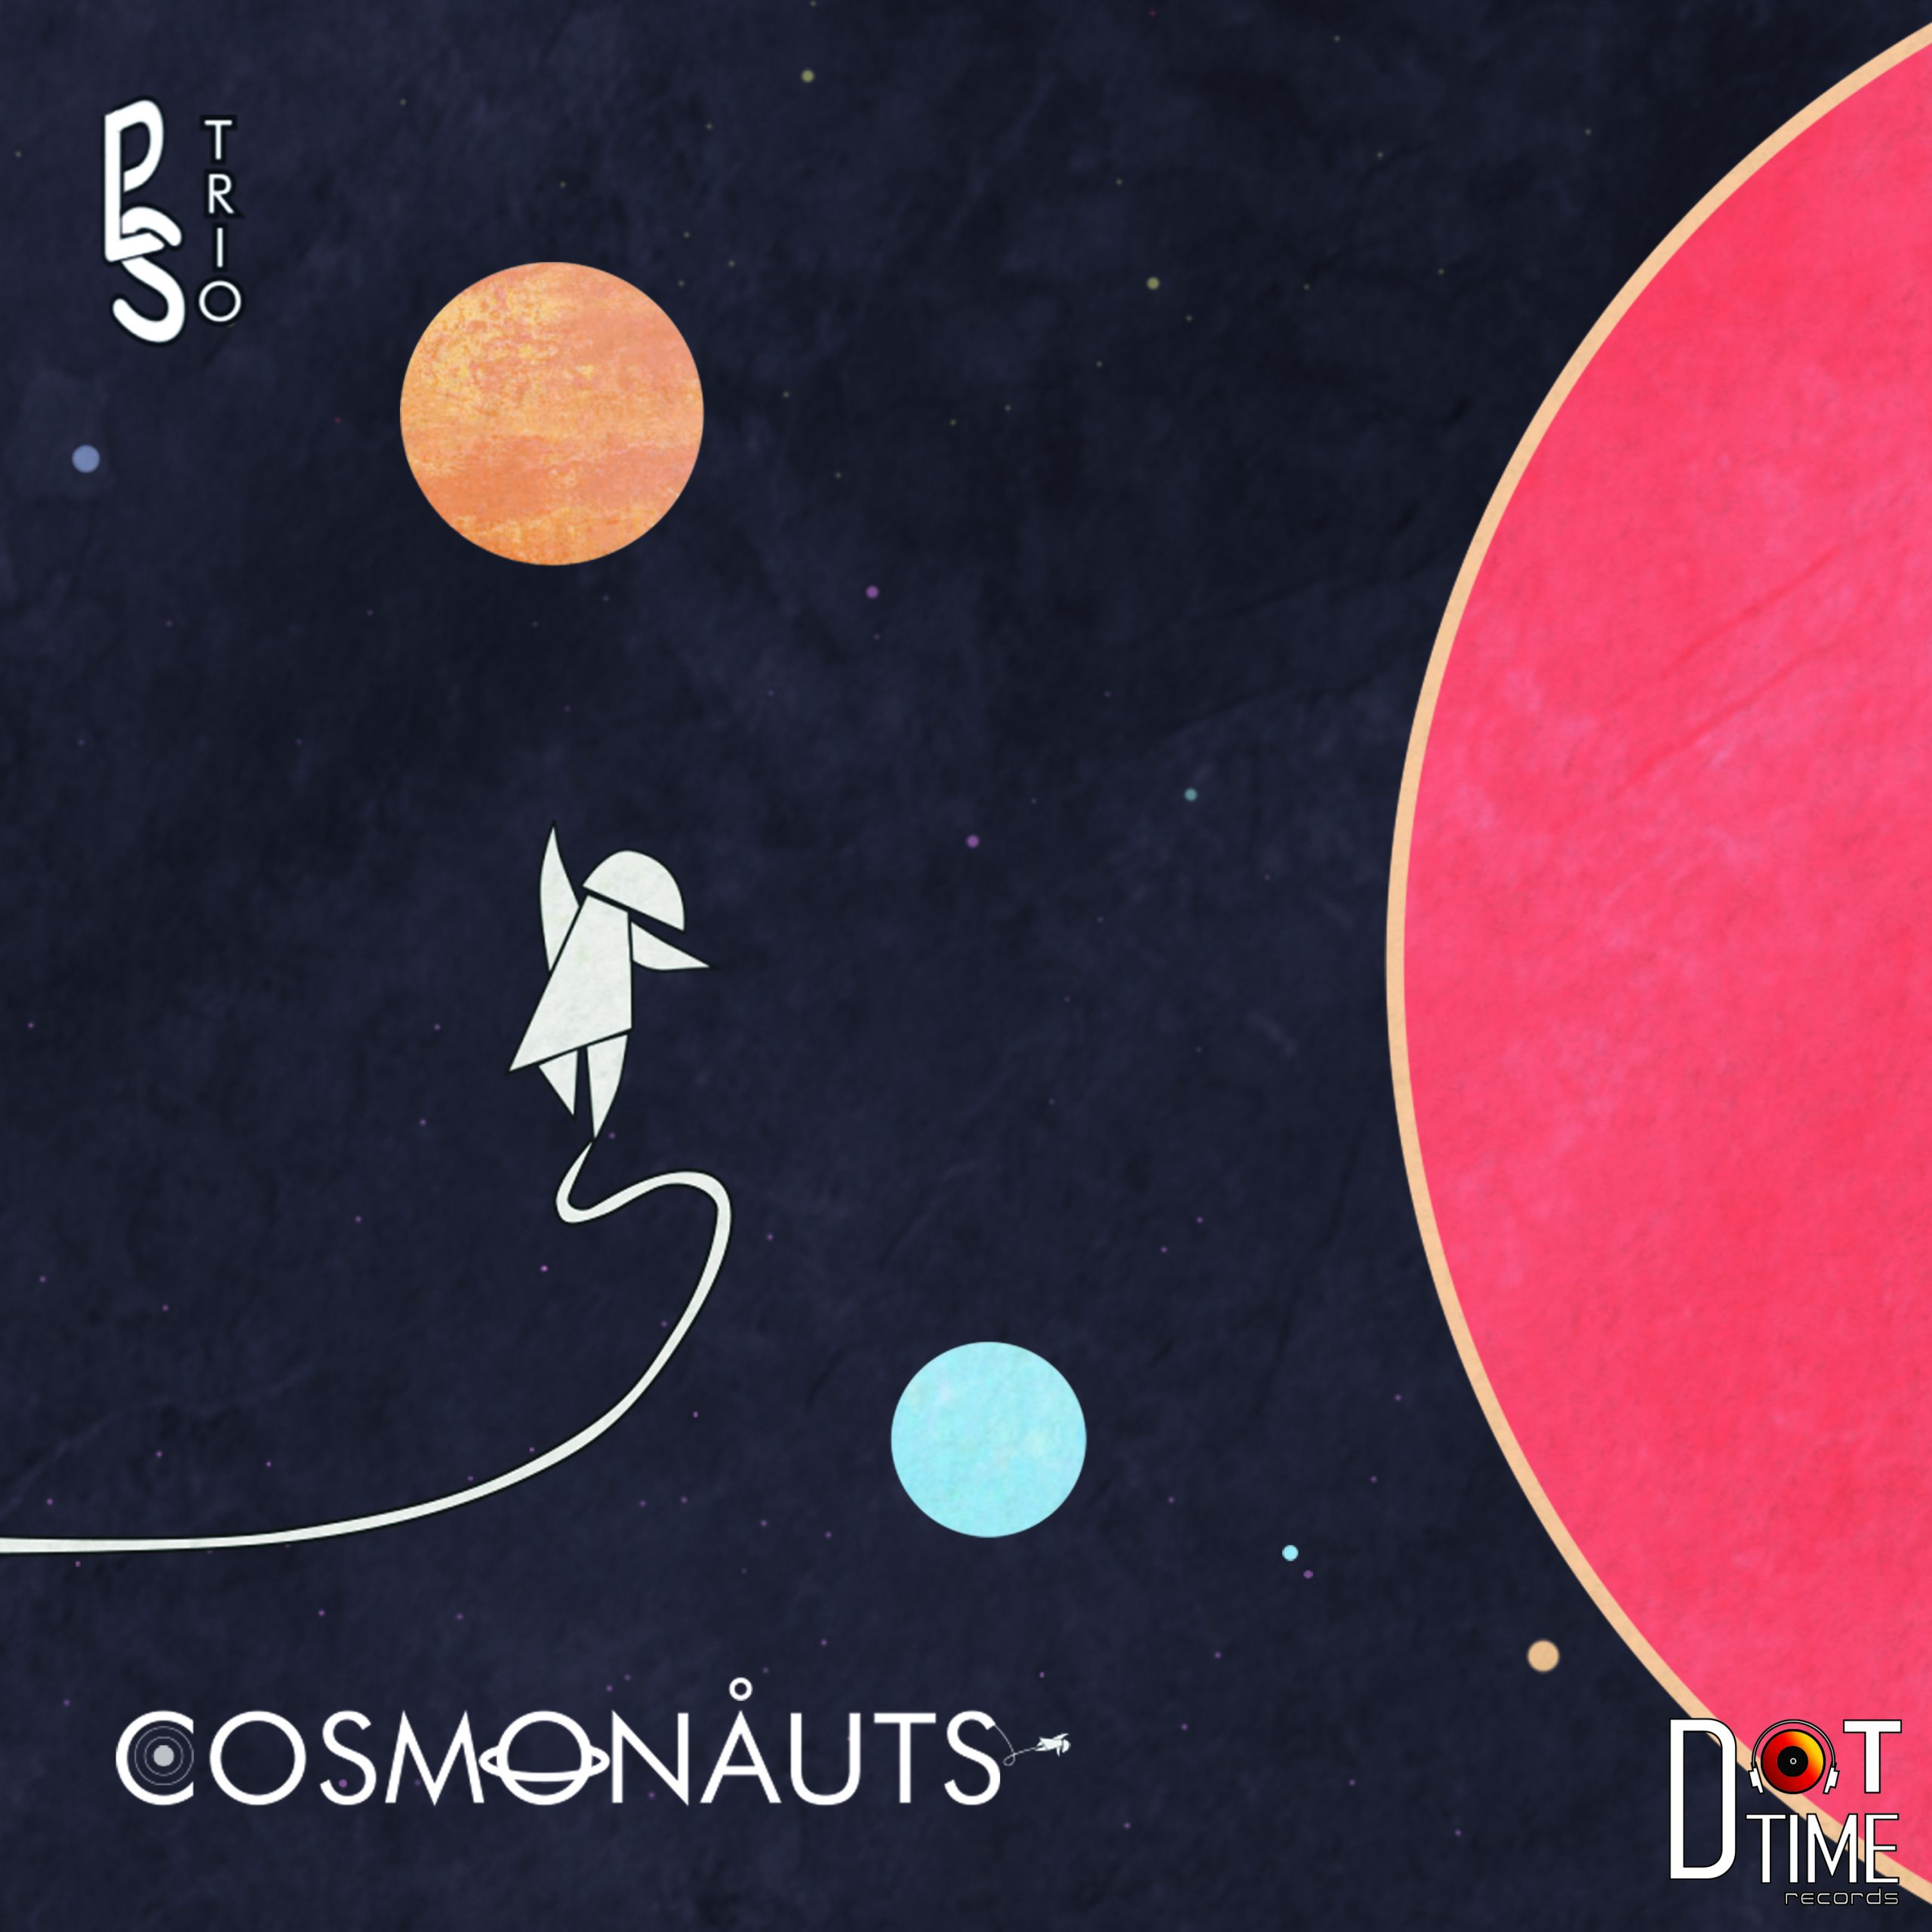 NEW RELEASE: PLS.trio to Release COSMONAUTS via Dot Time Records on January 15, 2021